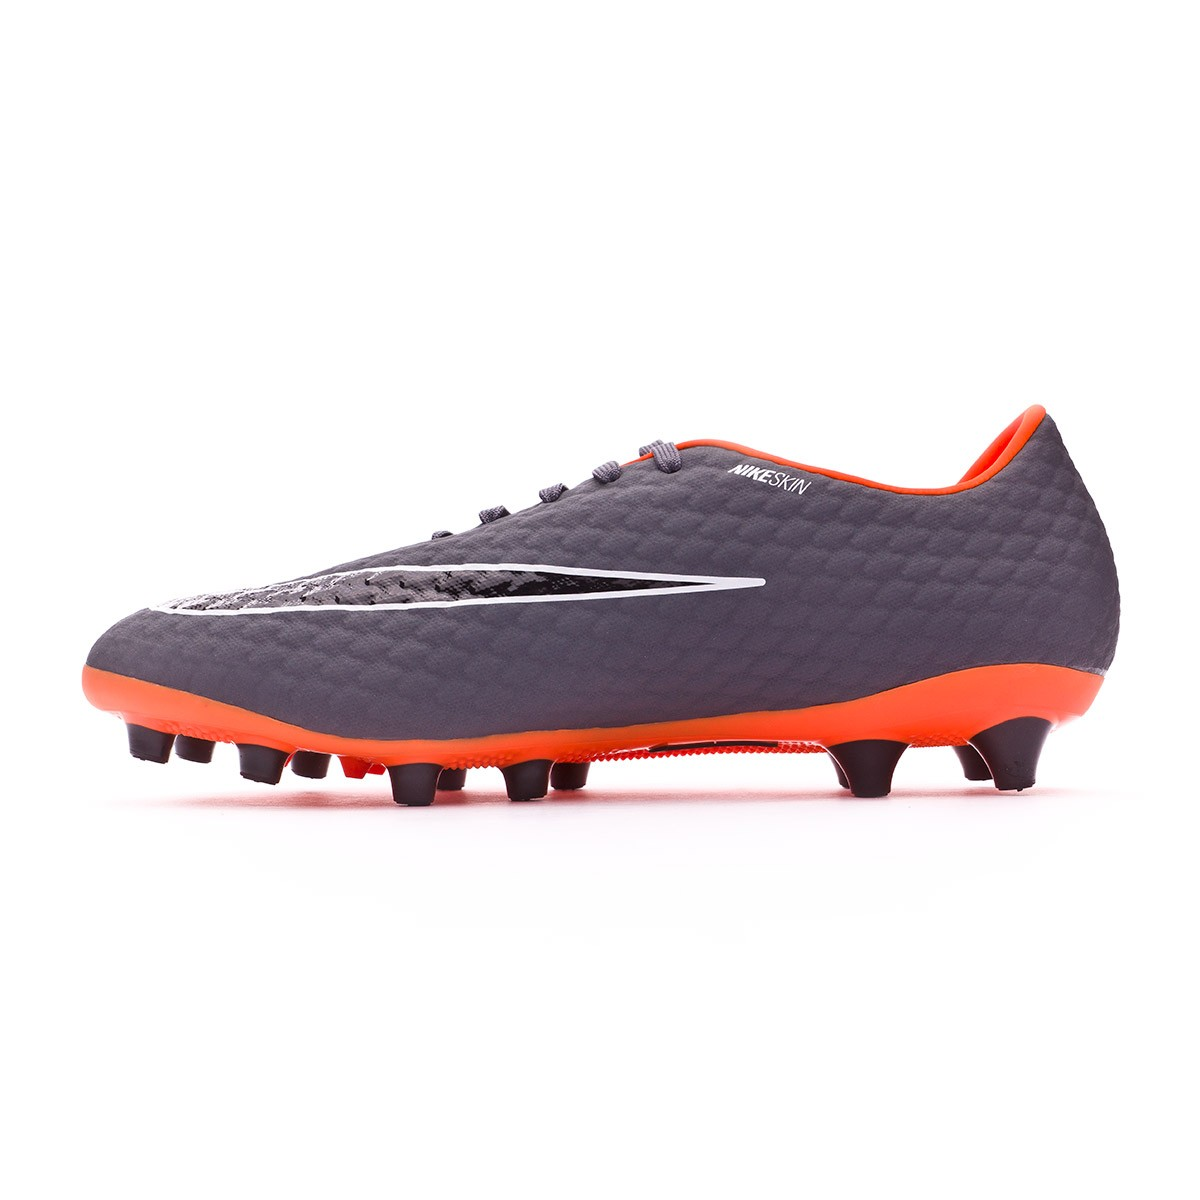 228e5d2f4b8 Football Boots Nike Hypervenom Phantom III Academy AG-Pro Dark grey-Total  orange-White - Football store Fútbol Emotion